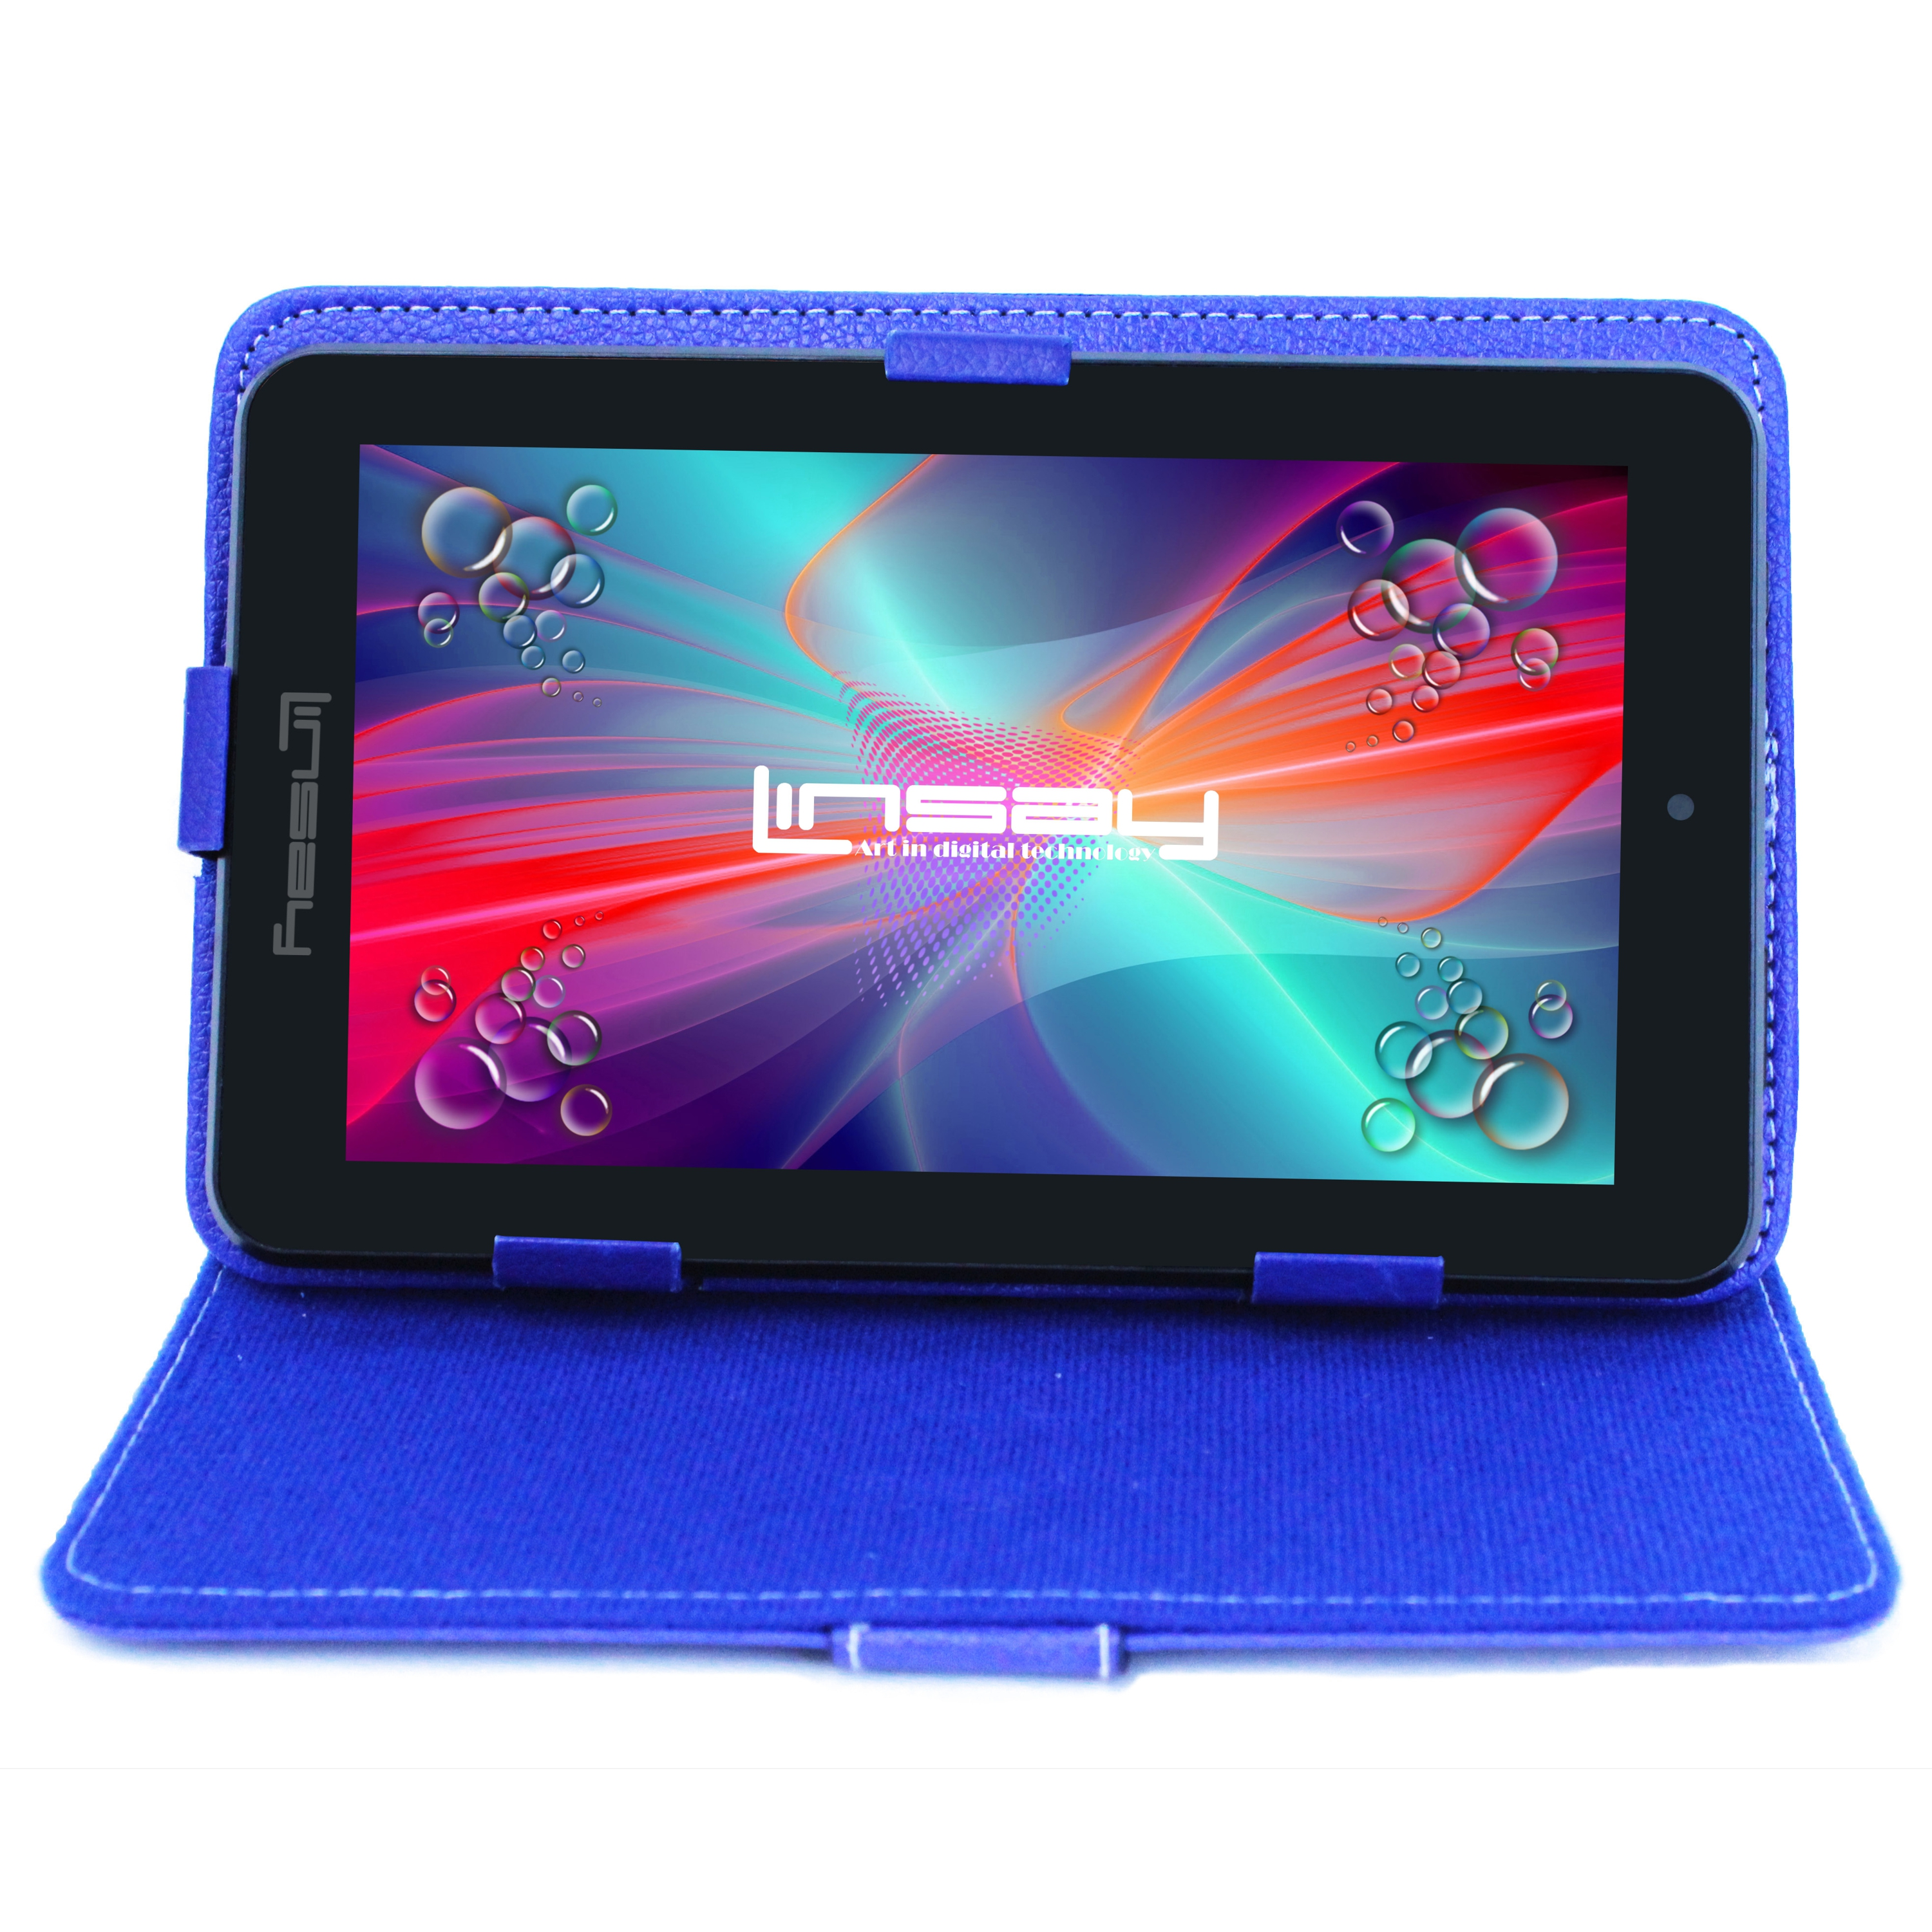 "LINSAY 7"" 1024x600 HD Touchscreen Tablet PC Featuring Android 6.0 Operating System Bundle with Blue Case"